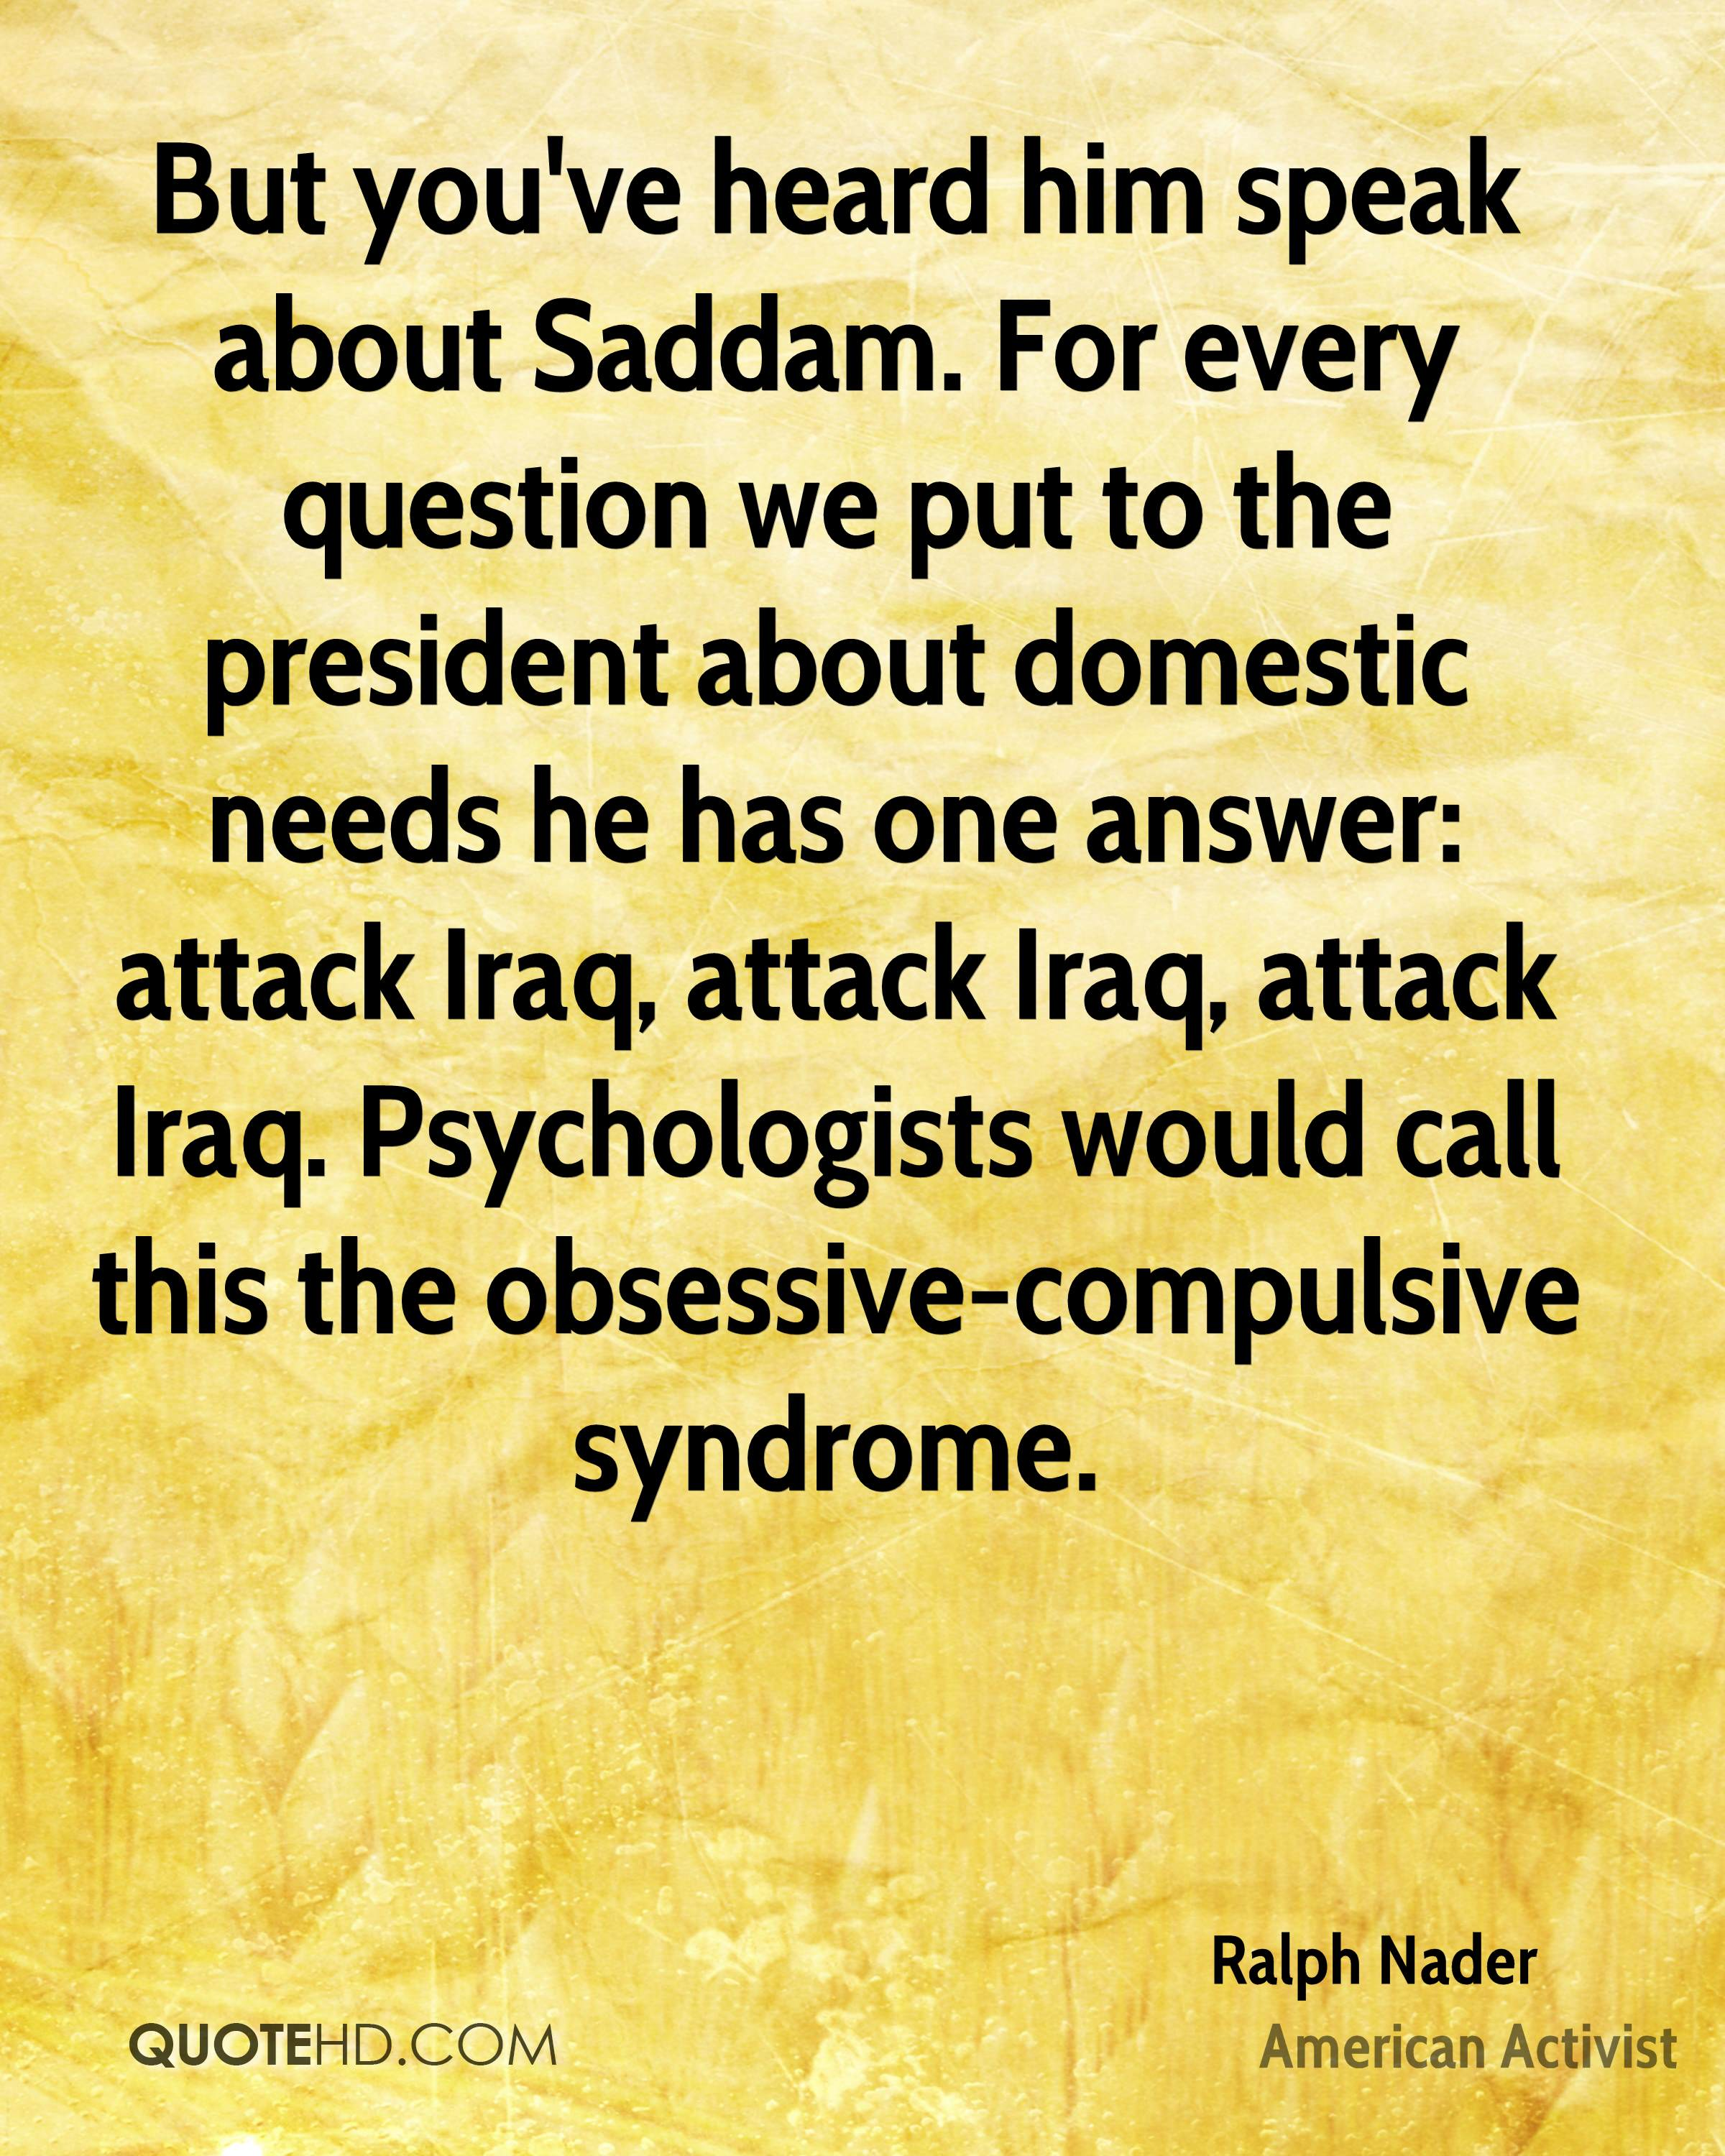 But you've heard him speak about Saddam. For every question we put to the president about domestic needs he has one answer: attack Iraq, attack Iraq, attack Iraq. Psychologists would call this the obsessive-compulsive syndrome.